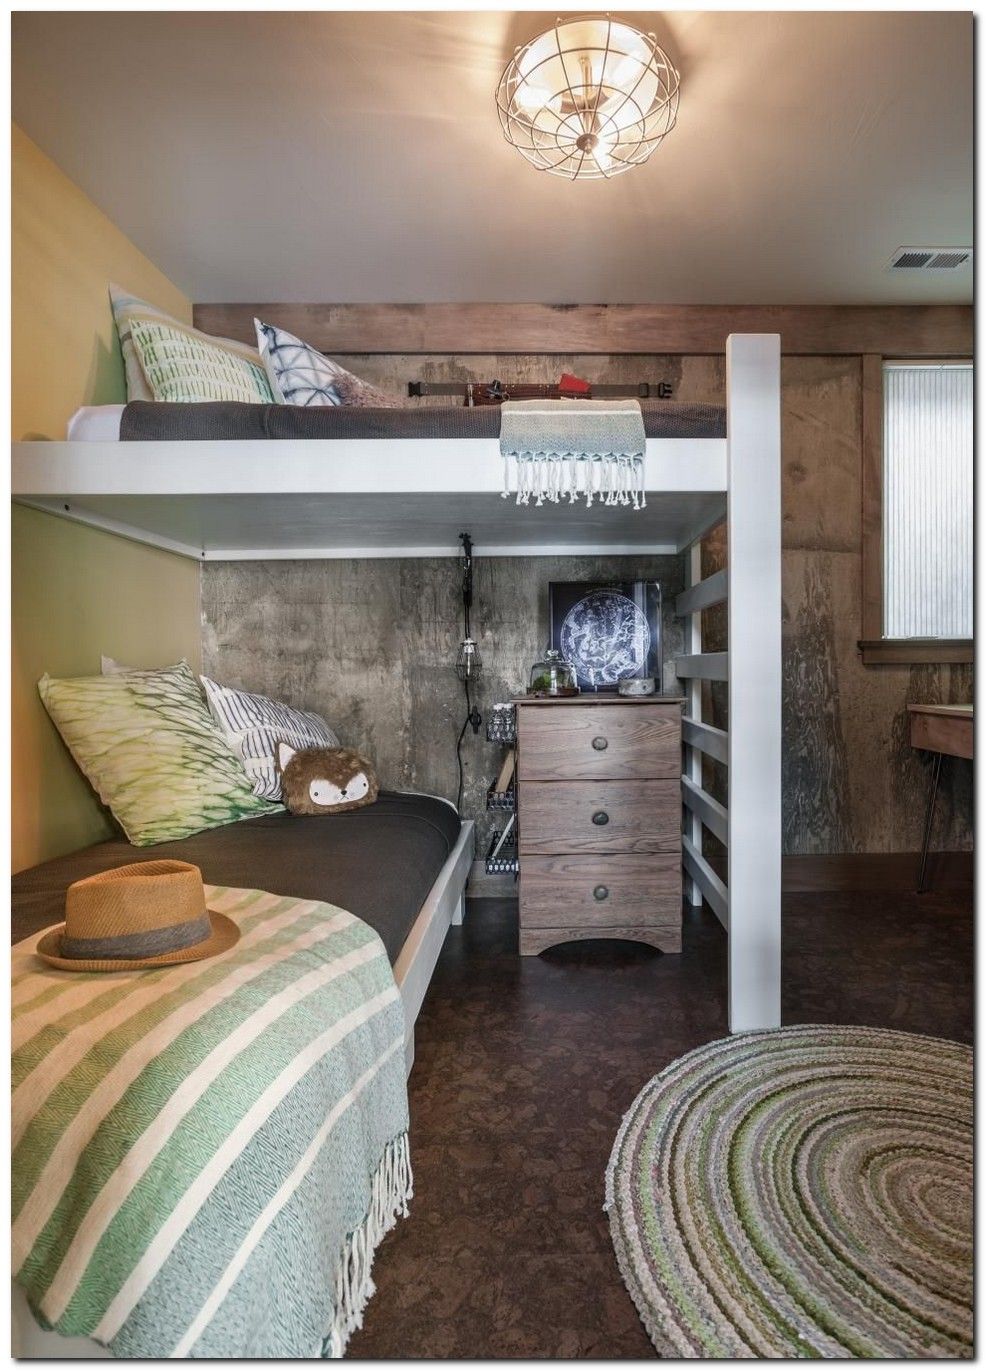 The benefits of bunk beds for kids 6